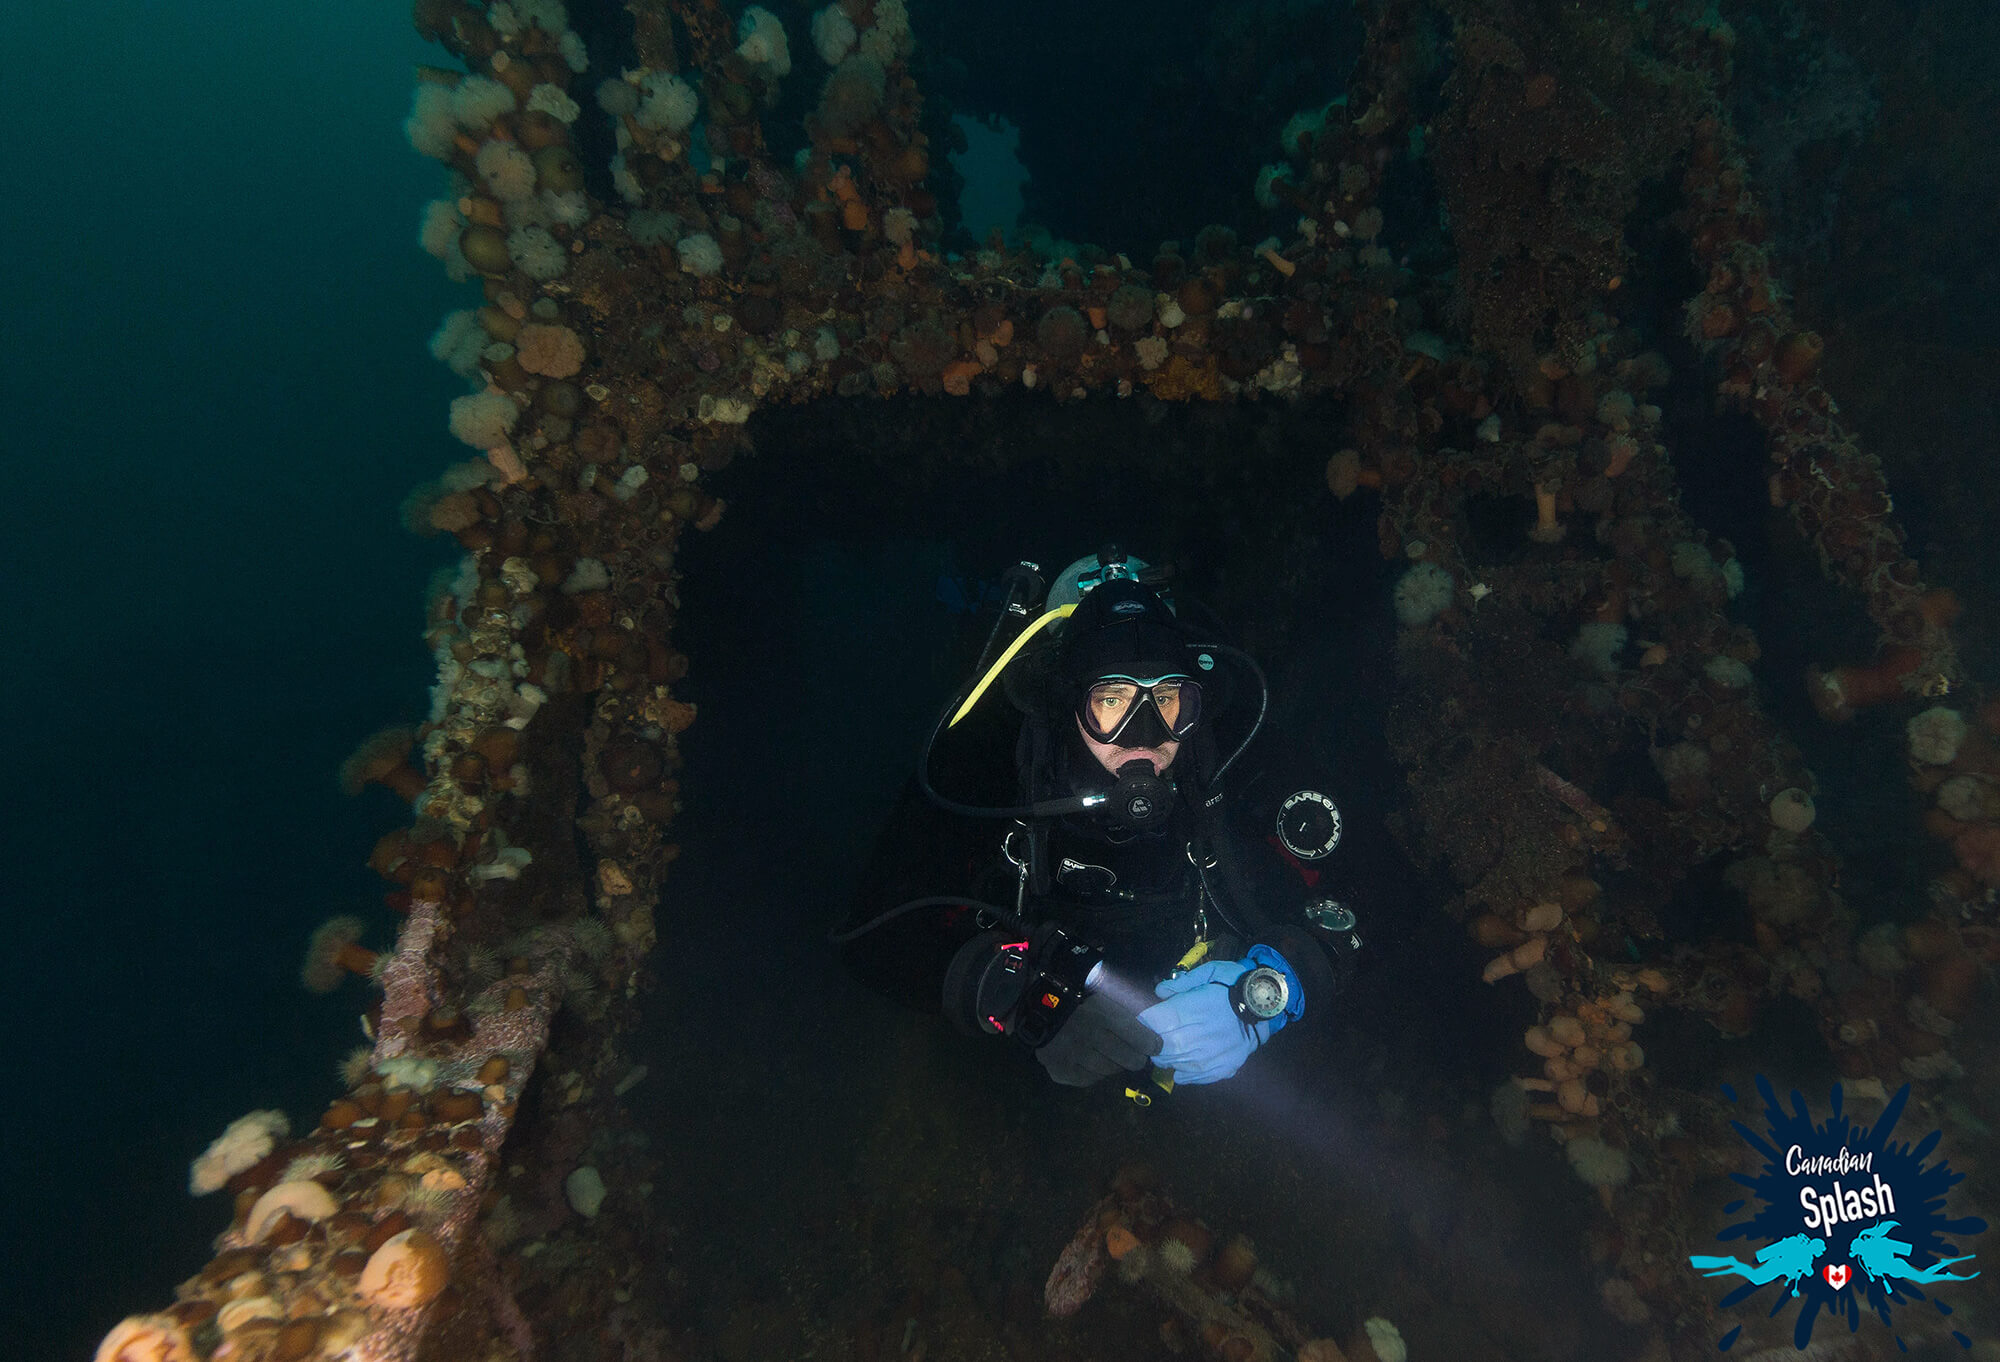 Scuba Joey Swimming Through The Walkway Of The Lord Strathcona Shipwreck In Bell Island, Newfoundland, Scuba Diving Canada